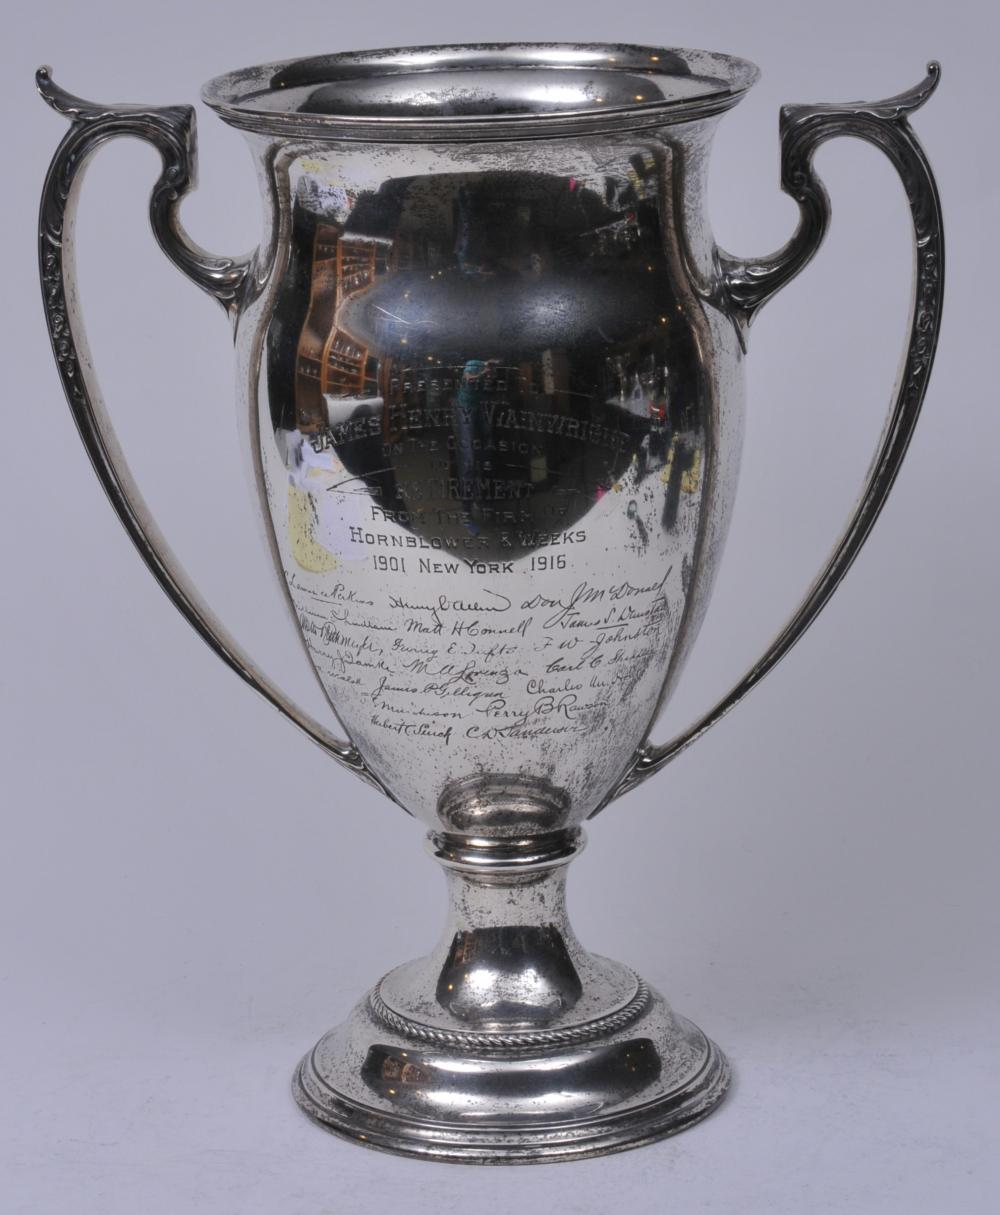 "Lot 275: Reed and Barton large sterling silver two handled trophy. 1916. Presented to James Henry Wainwright. Retirement from Hornblower & Weeks. 15-1/2"" high. 13-1/2"" wide. Rope turned base border. Good condition. 75.5 ozt."